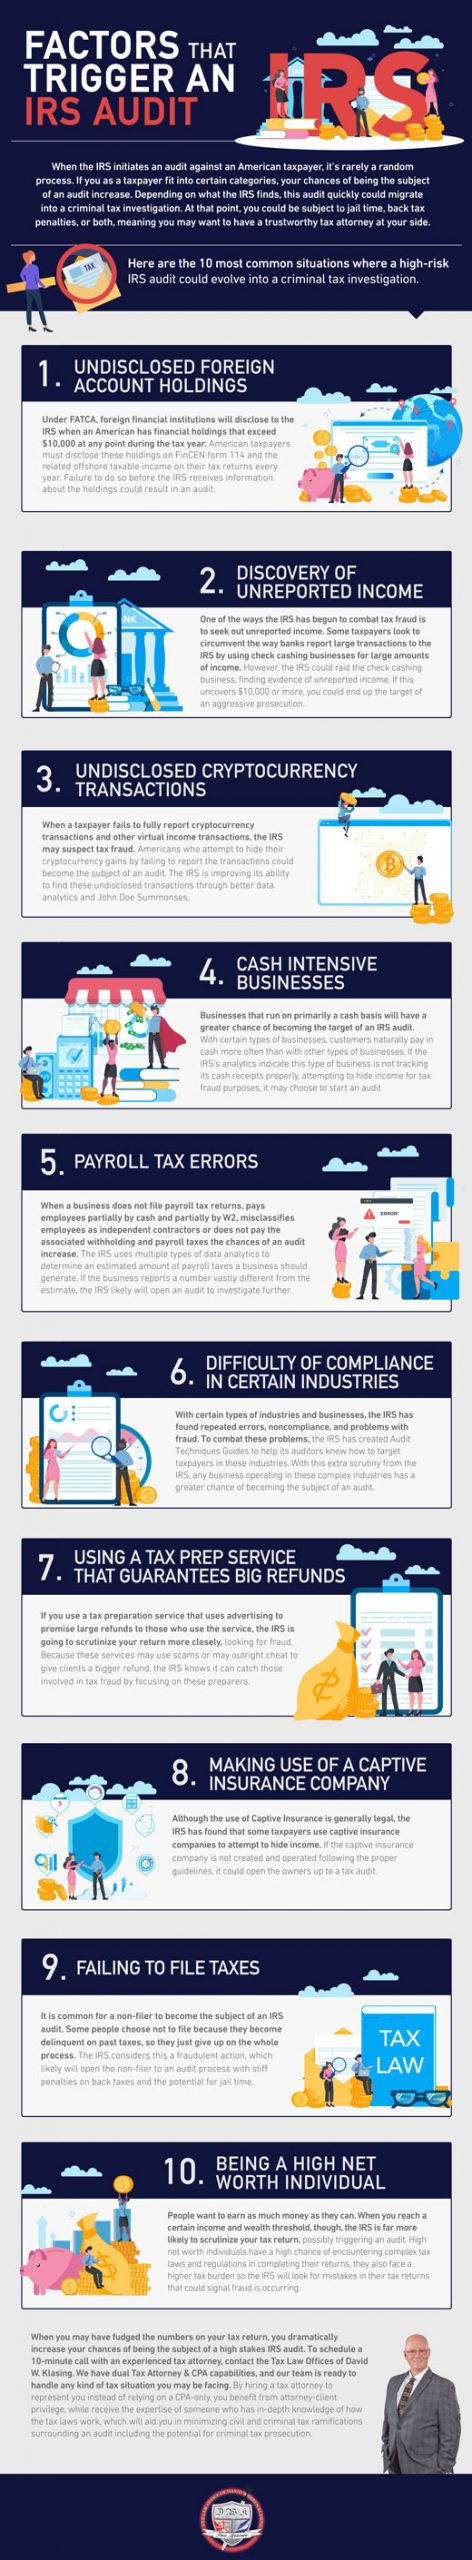 factors that trigger an irs audit  infographic